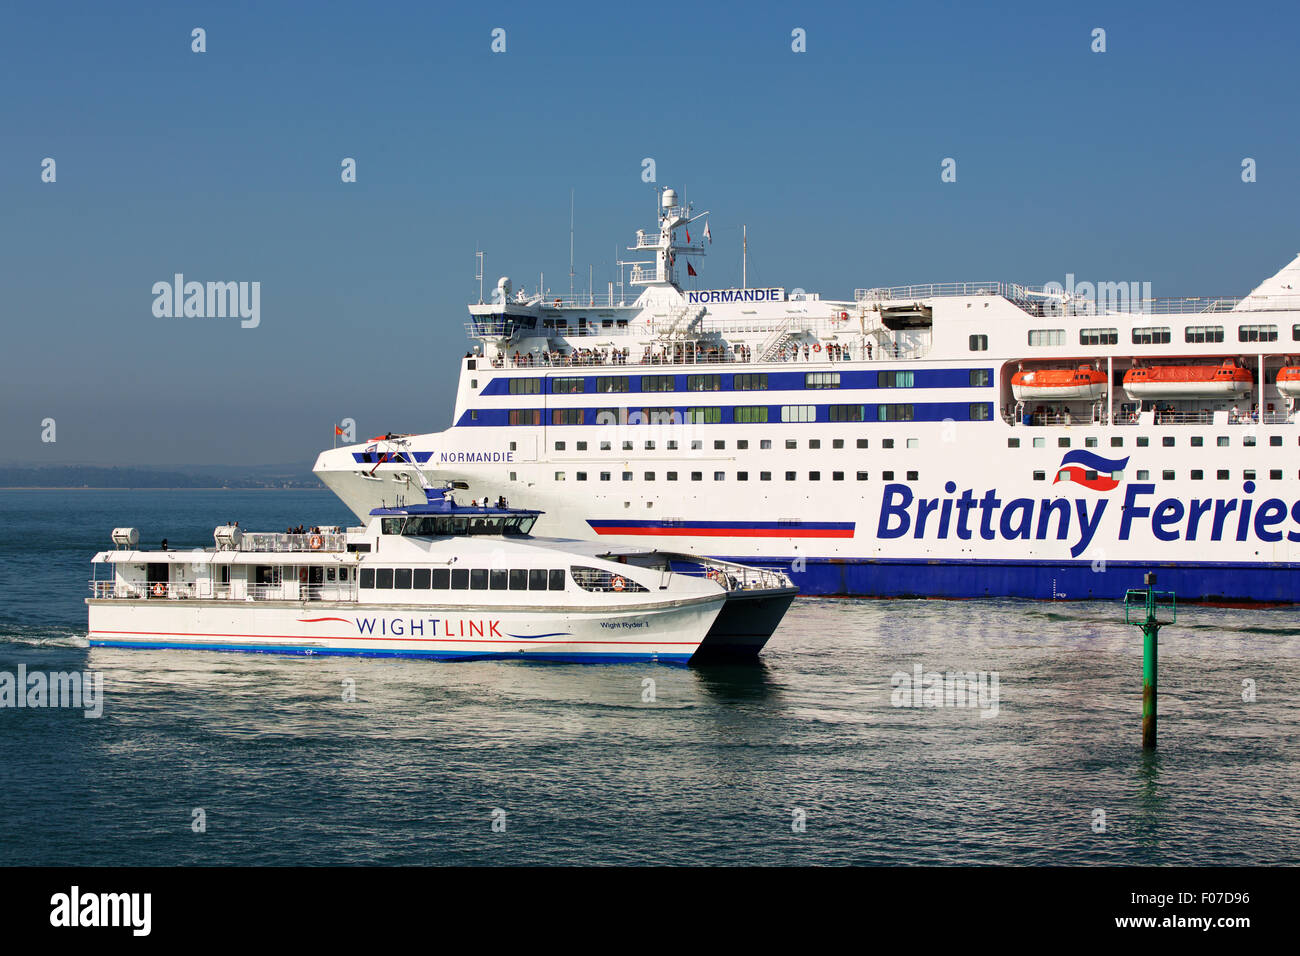 View Of The Brittany Ferries Car Ferry Normandie Leaving